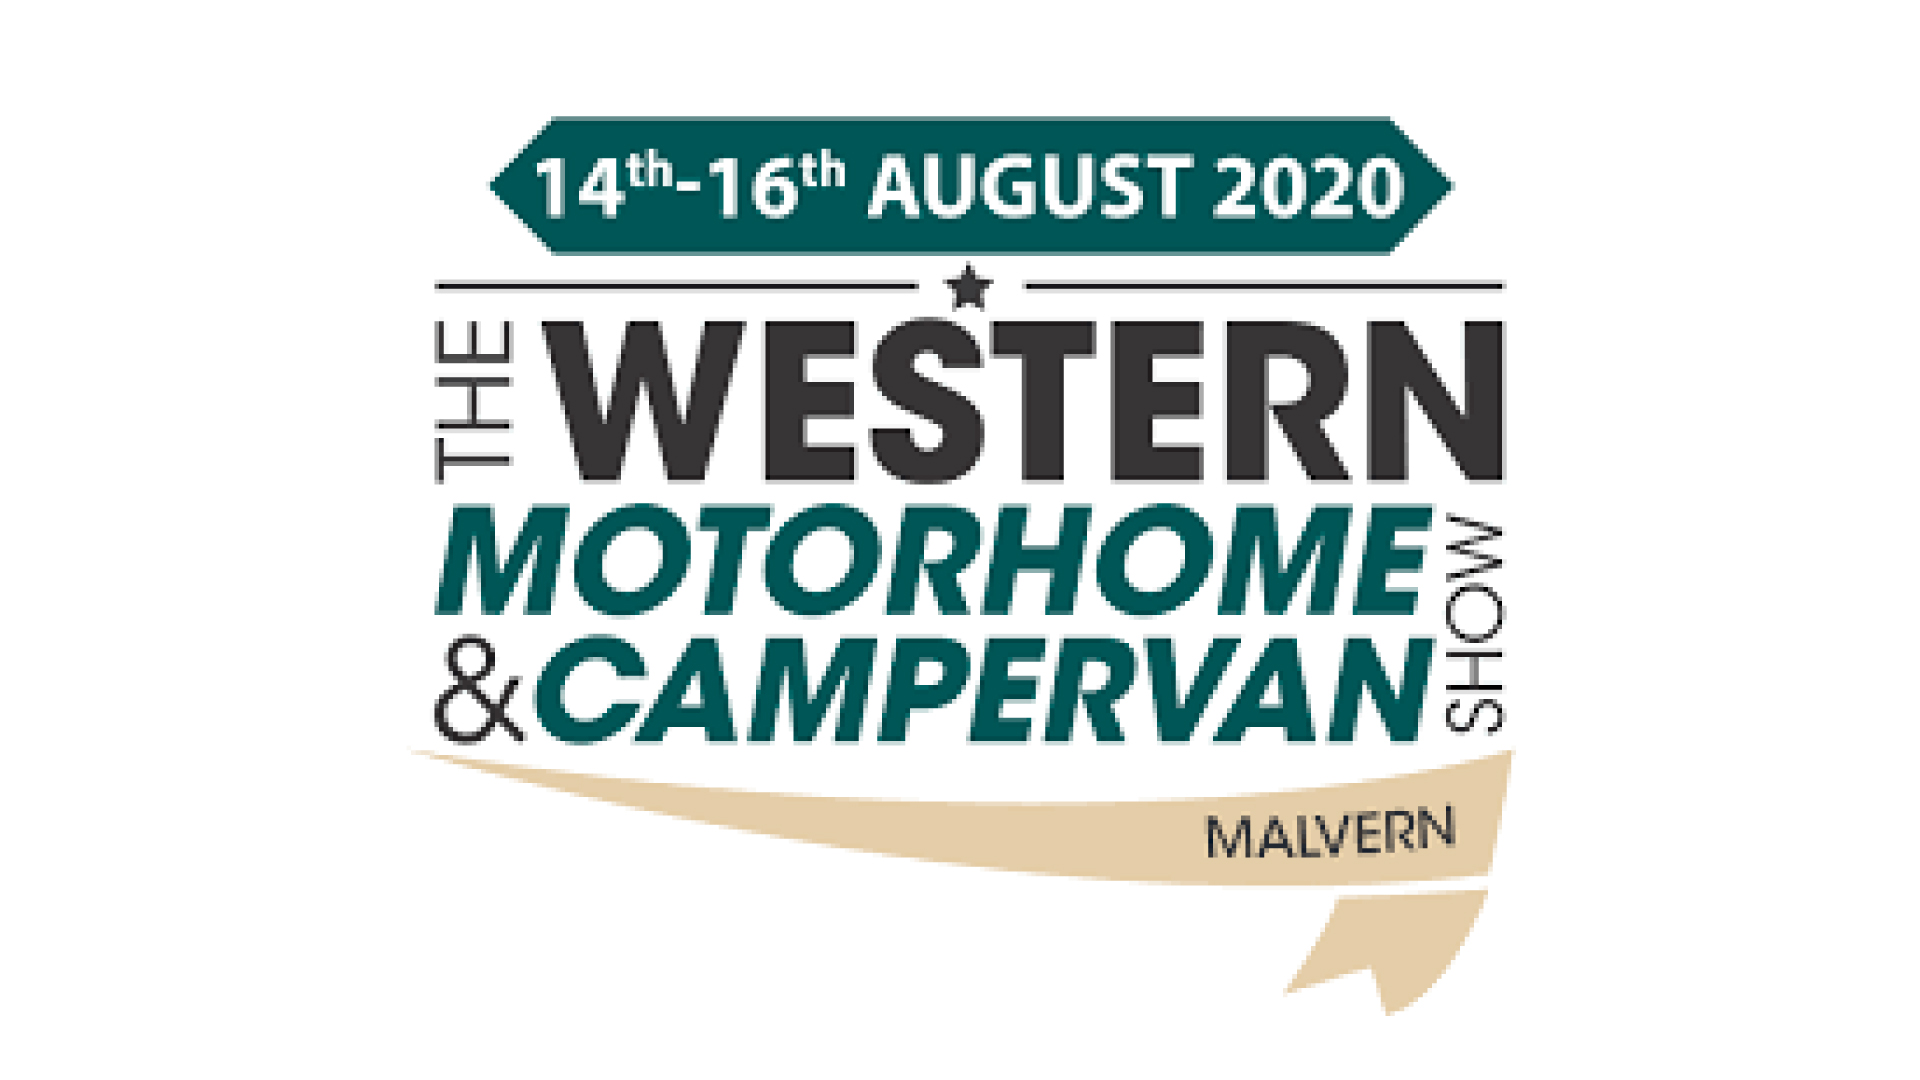 Warners shows western motorhome and campervan show, August 14th 2020